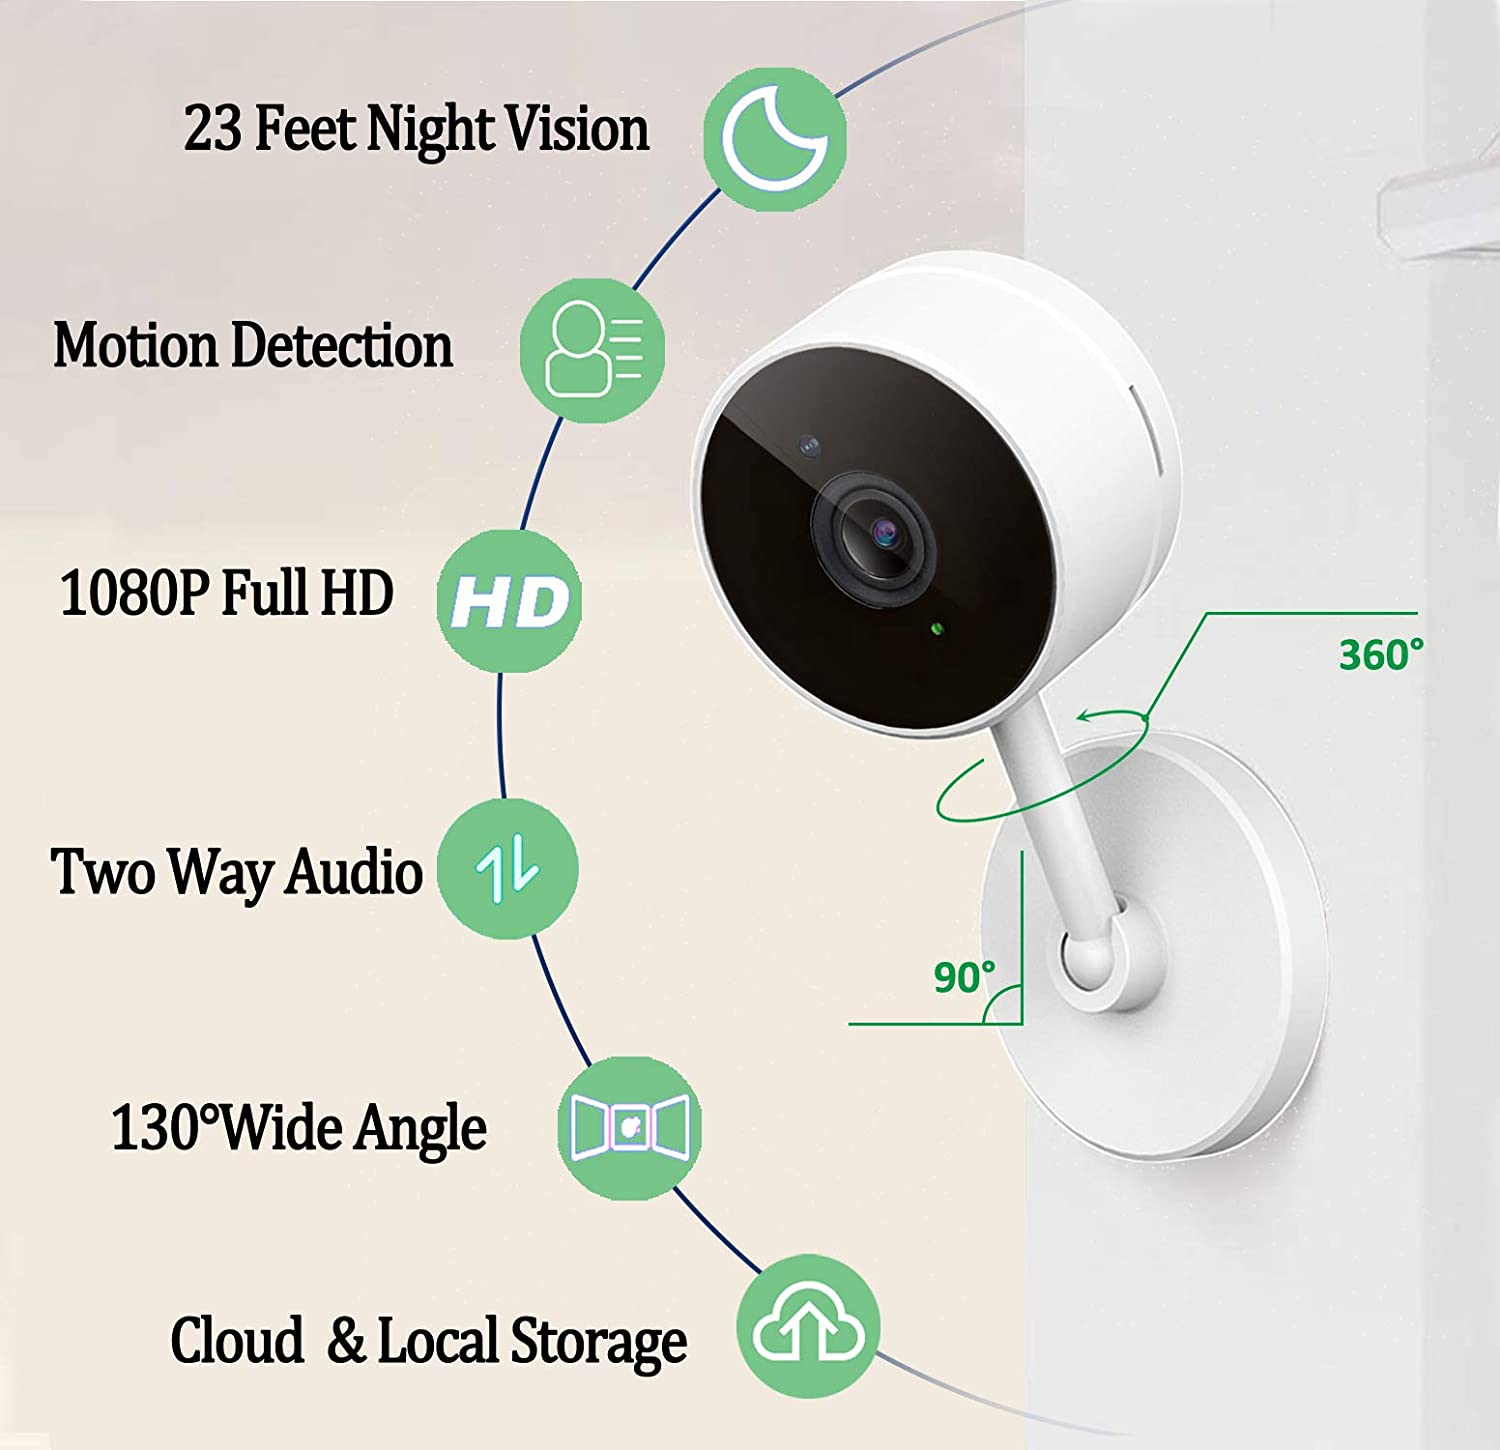 LARKKEY 1080p WiFi Home Smart Camera, Wireless Indoor 2.4G IP Security Surveillance with Night Vision, Monitor with iOS, Android App, Compatible with Alexa White